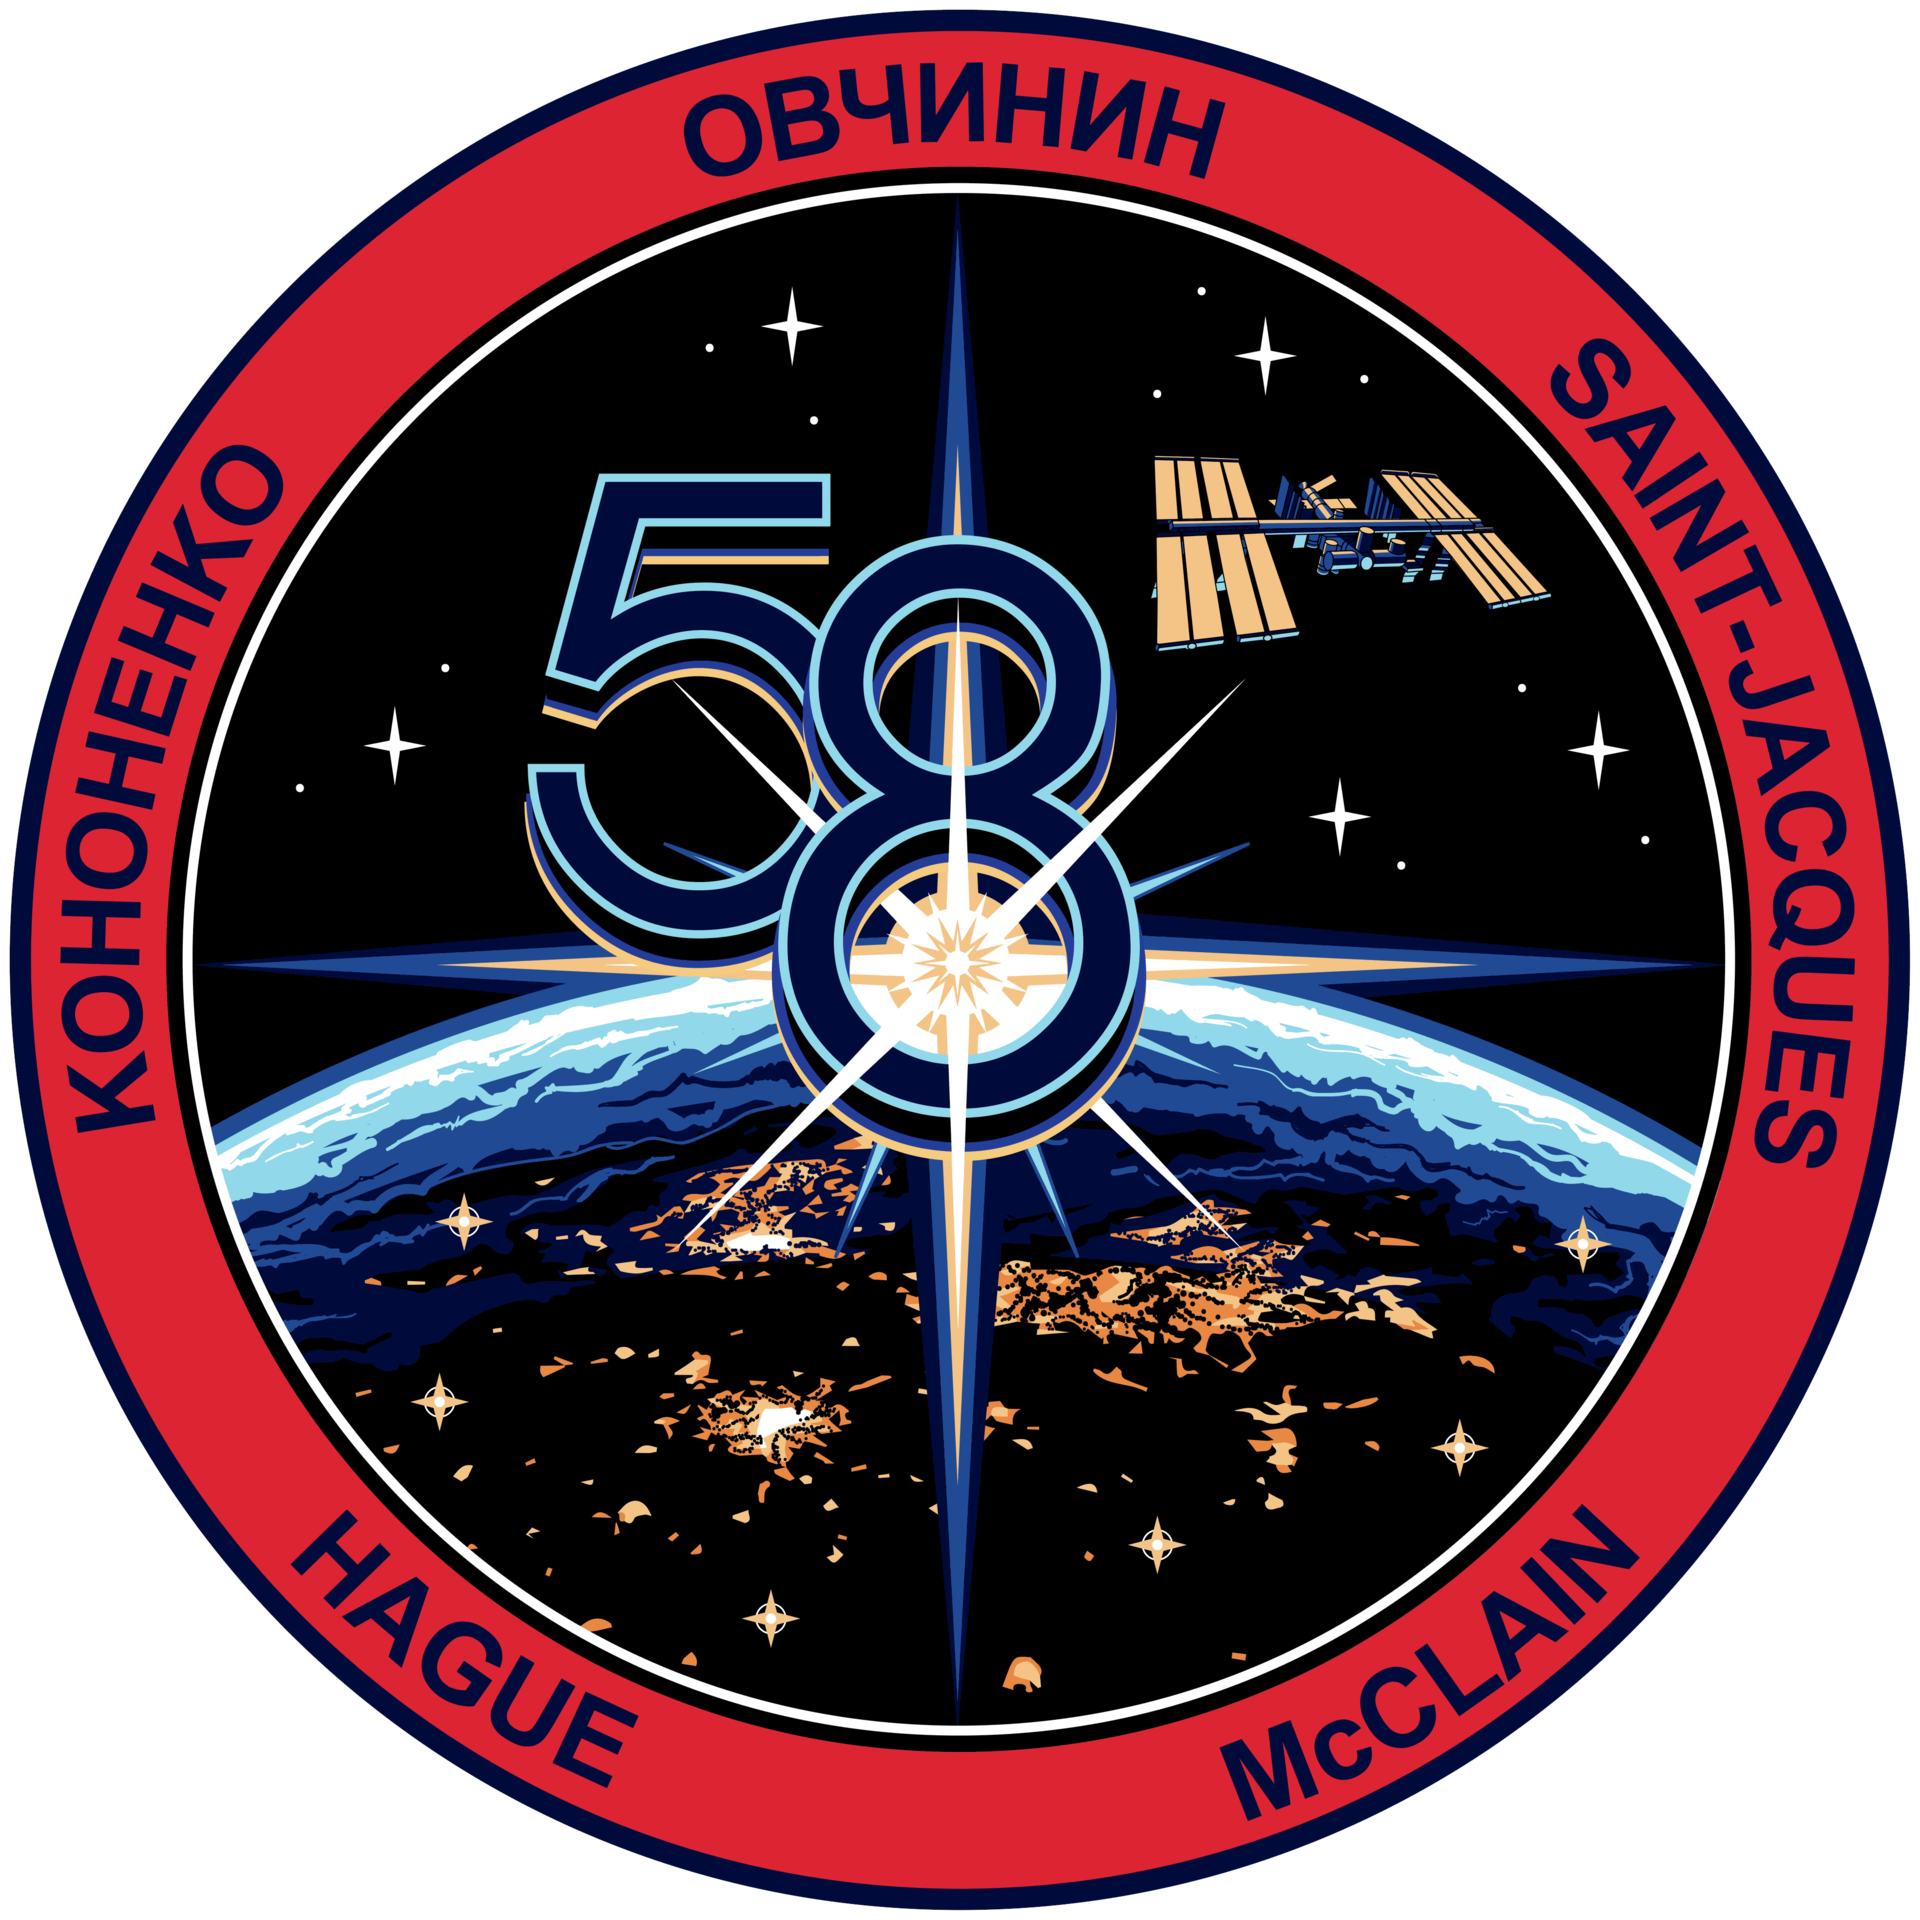 ISS Expedition 58 Patch